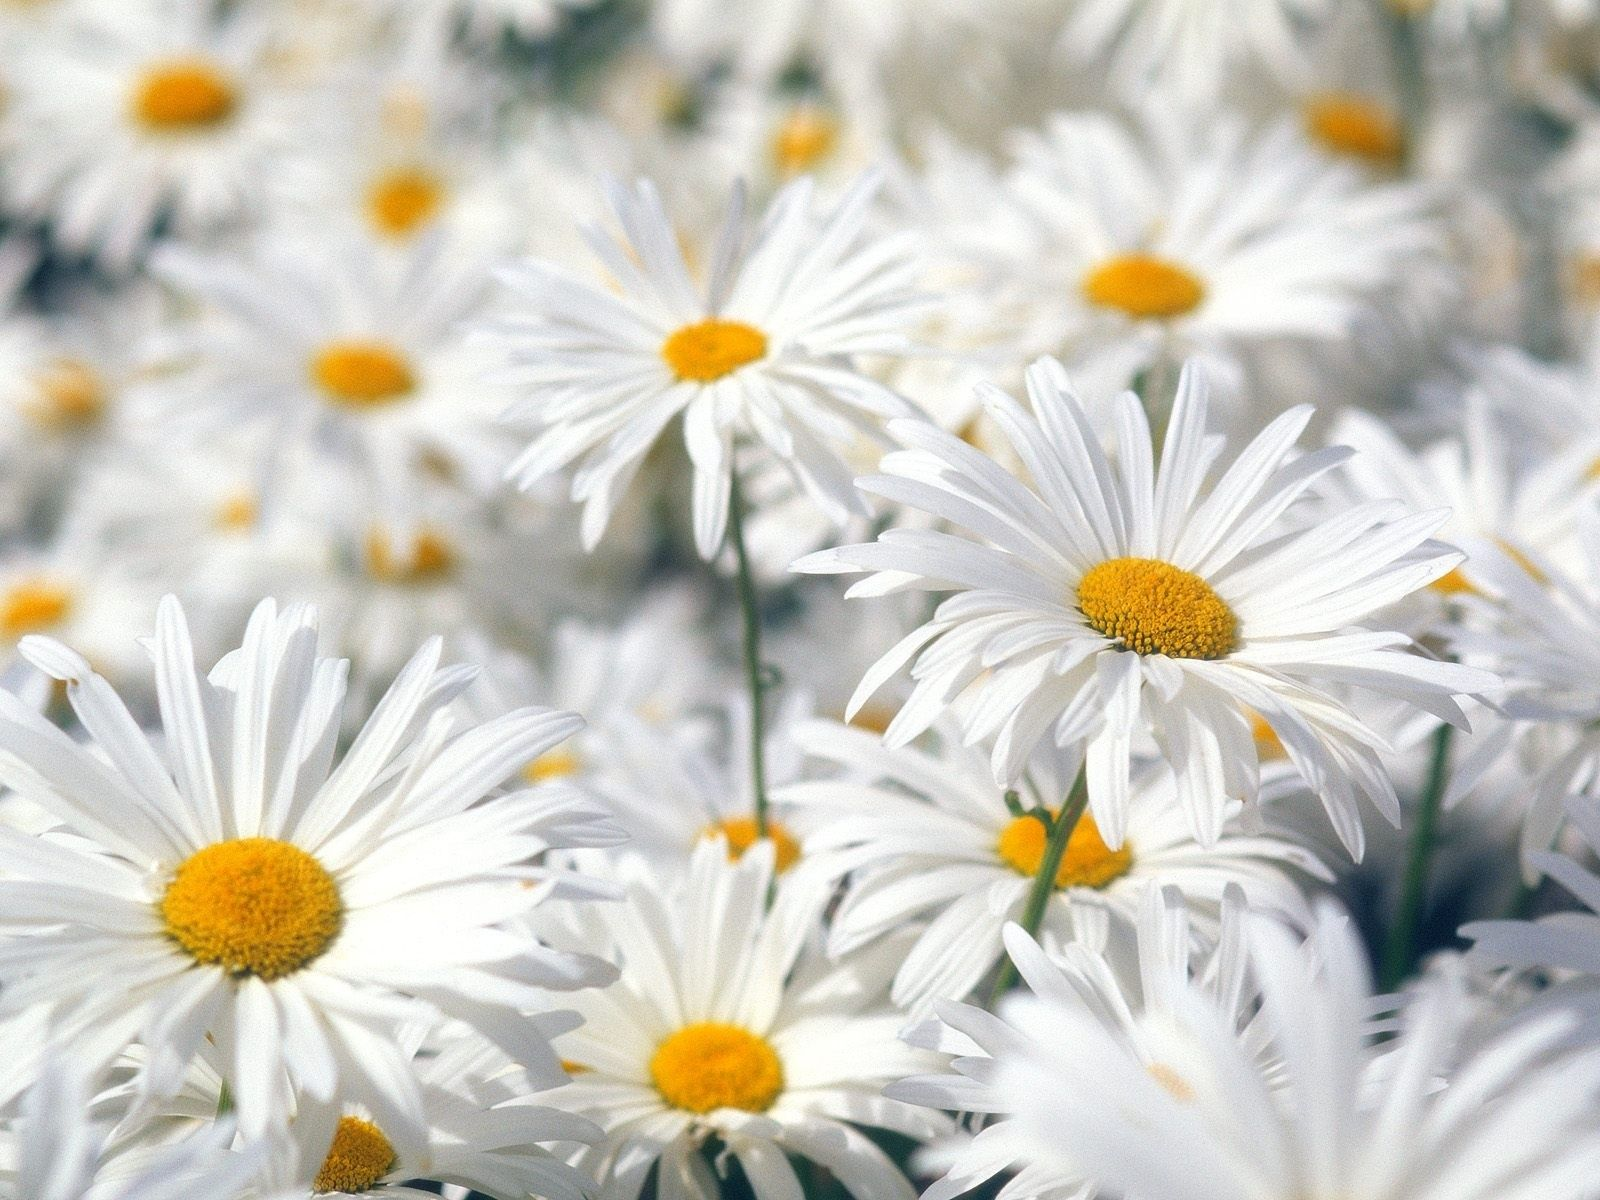 Fresh Daisies Always Bring A Smile And Are An Affordable Spring